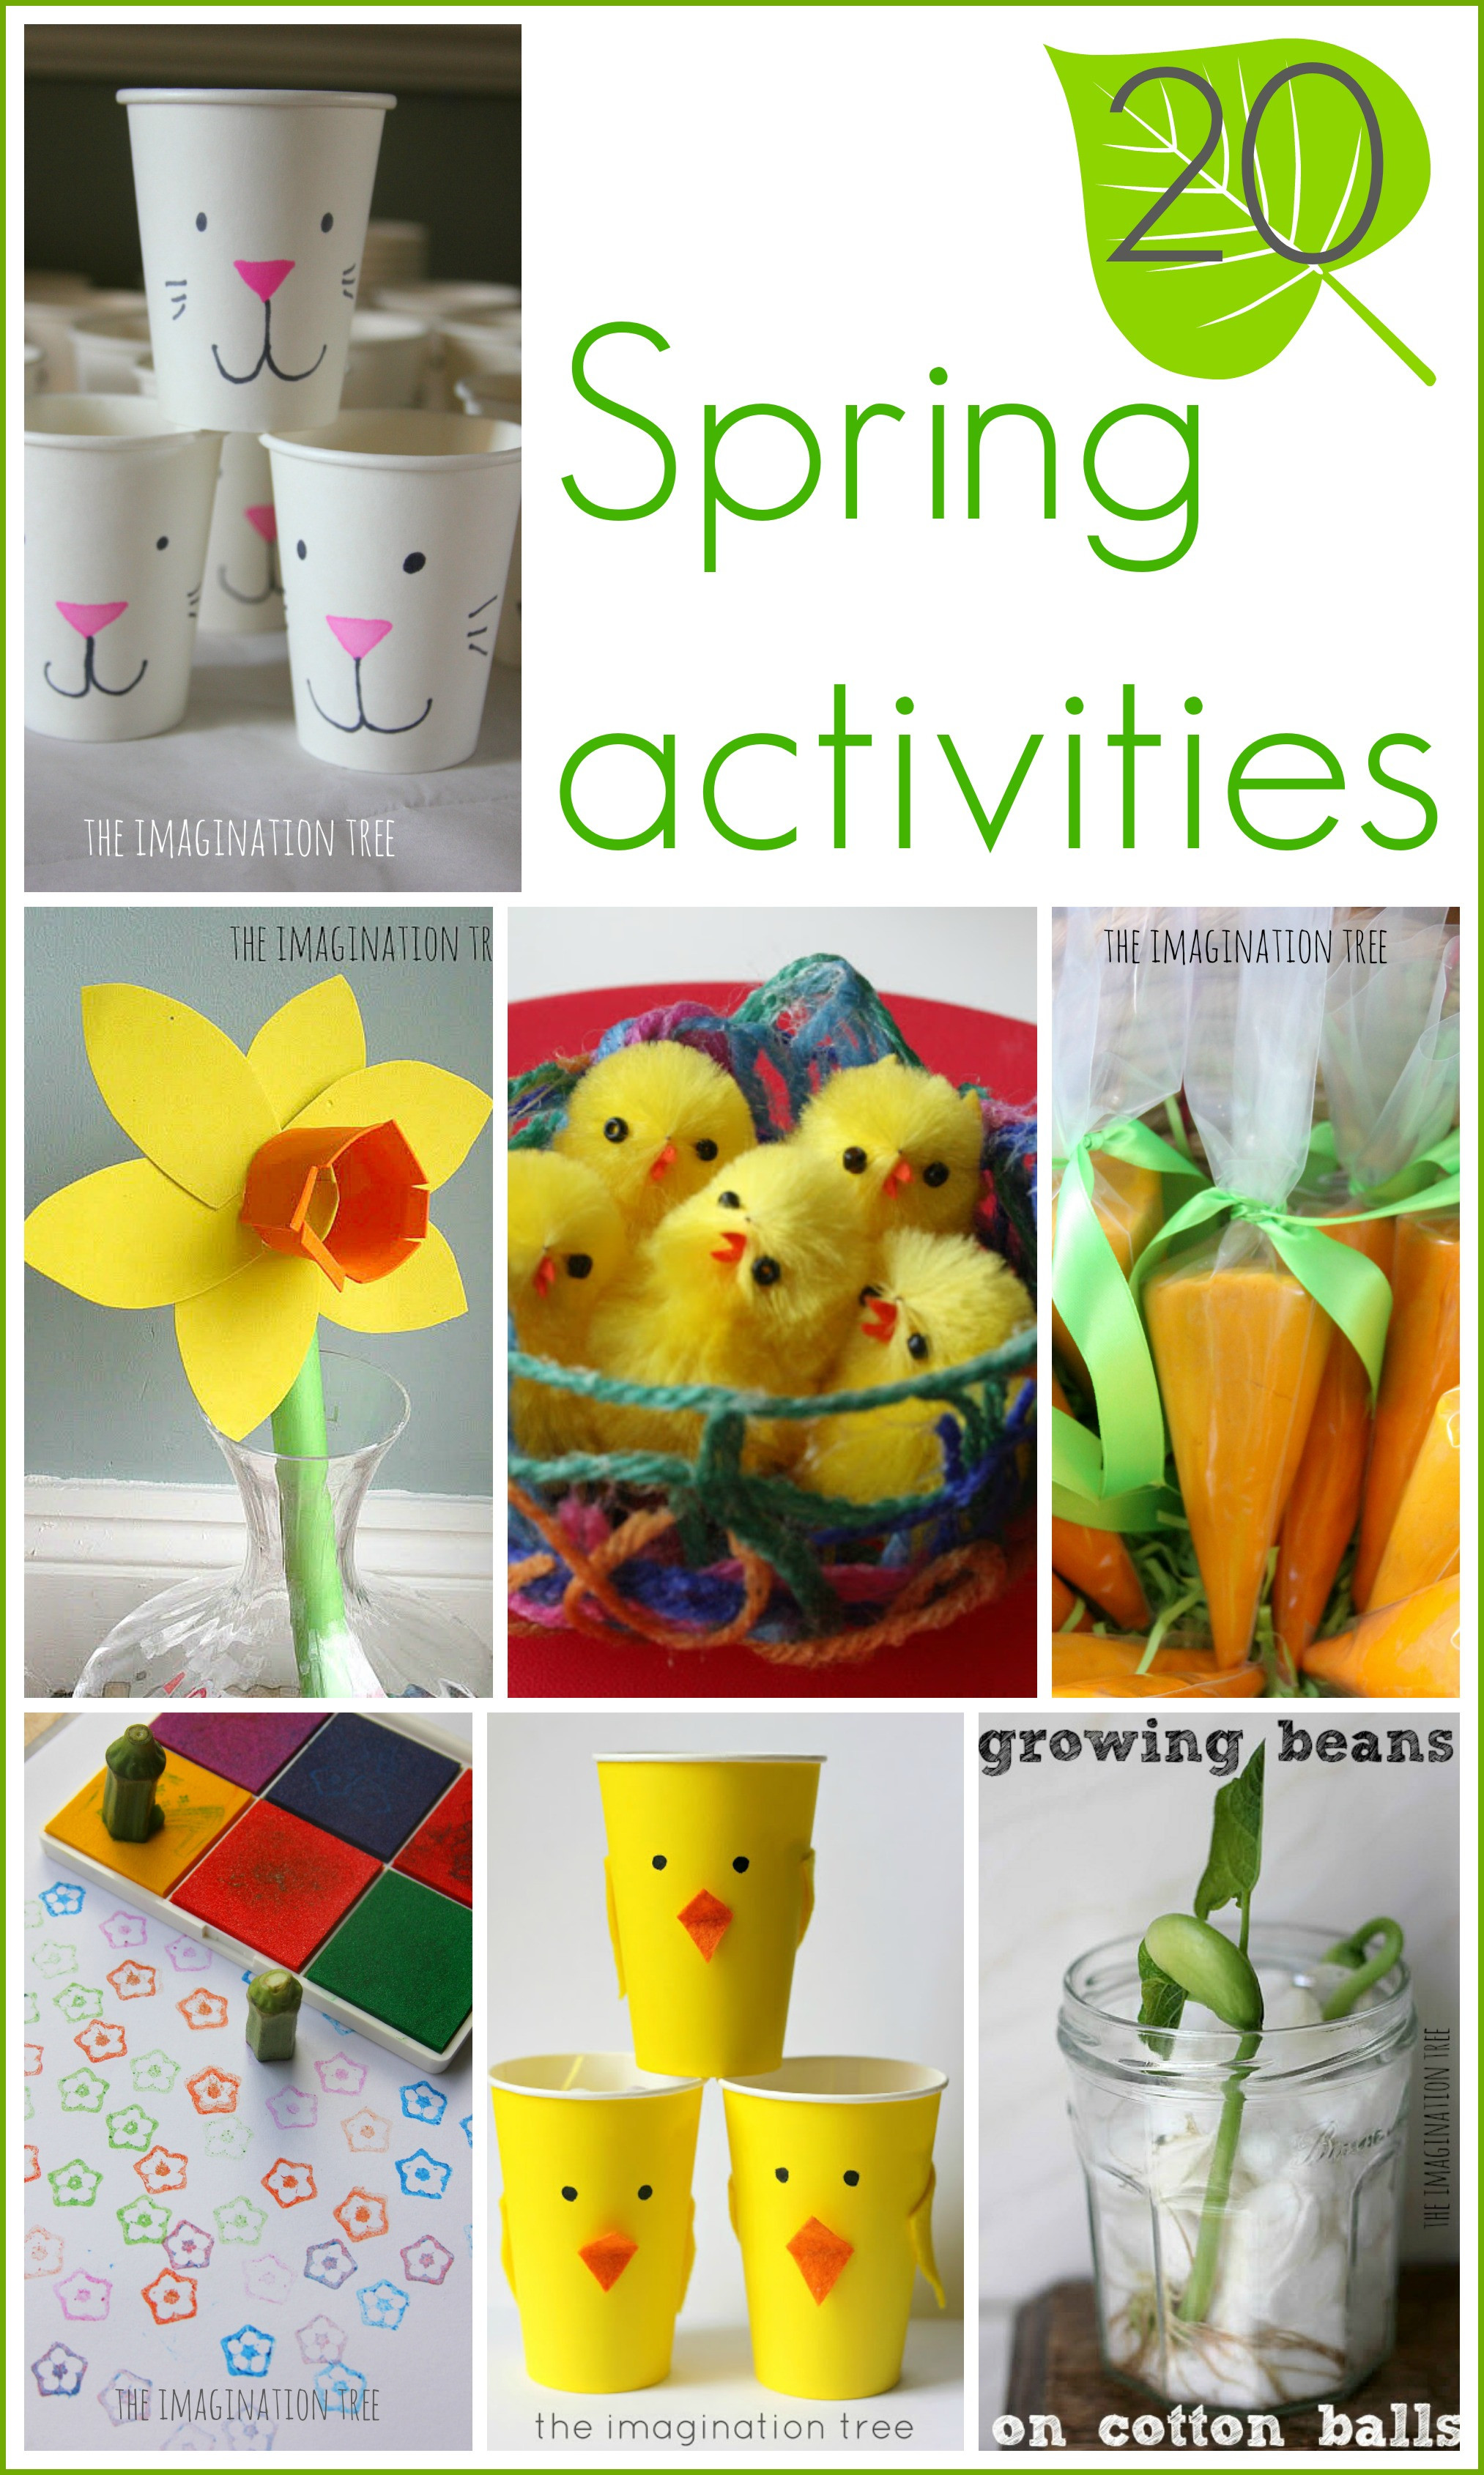 The Top 20 Ideas About Spring Craft Ideas For Kids